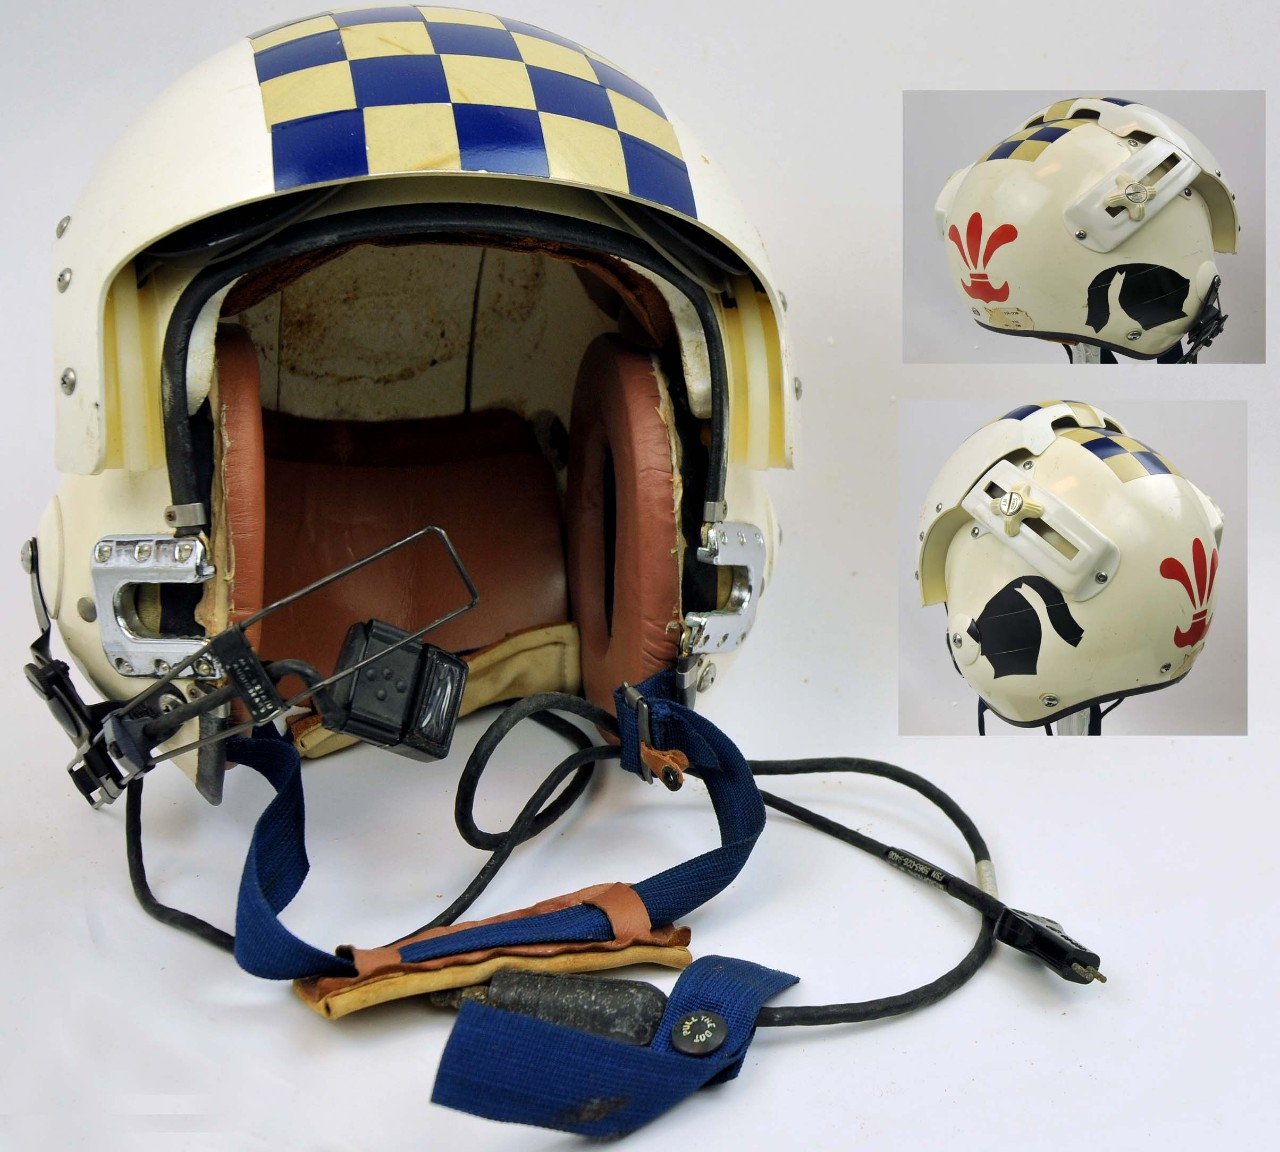 <p>One white flight helmet. The top and visor of the helmet have a square patch of blue and yellow squares in a checkboard pattern. The visor is adjustable along a track with two adjustment hand wheels on either side of the helmet. The part of the helmet that covers the ears, there is a black silhouette of a knight's helmet with trialing plume. At the back of the helmet is a red silhouette similar to a fleur-de-lis. At the front of the helmet is an adjustable blue strap with chin pad. There is an adjustable metal arm protruding from the right front sight that supports a black plastic square microphone. There is a black cord attached to the microphone that ends in a plug. The interior of the helmet is lined with reddish-brown foam.</p>